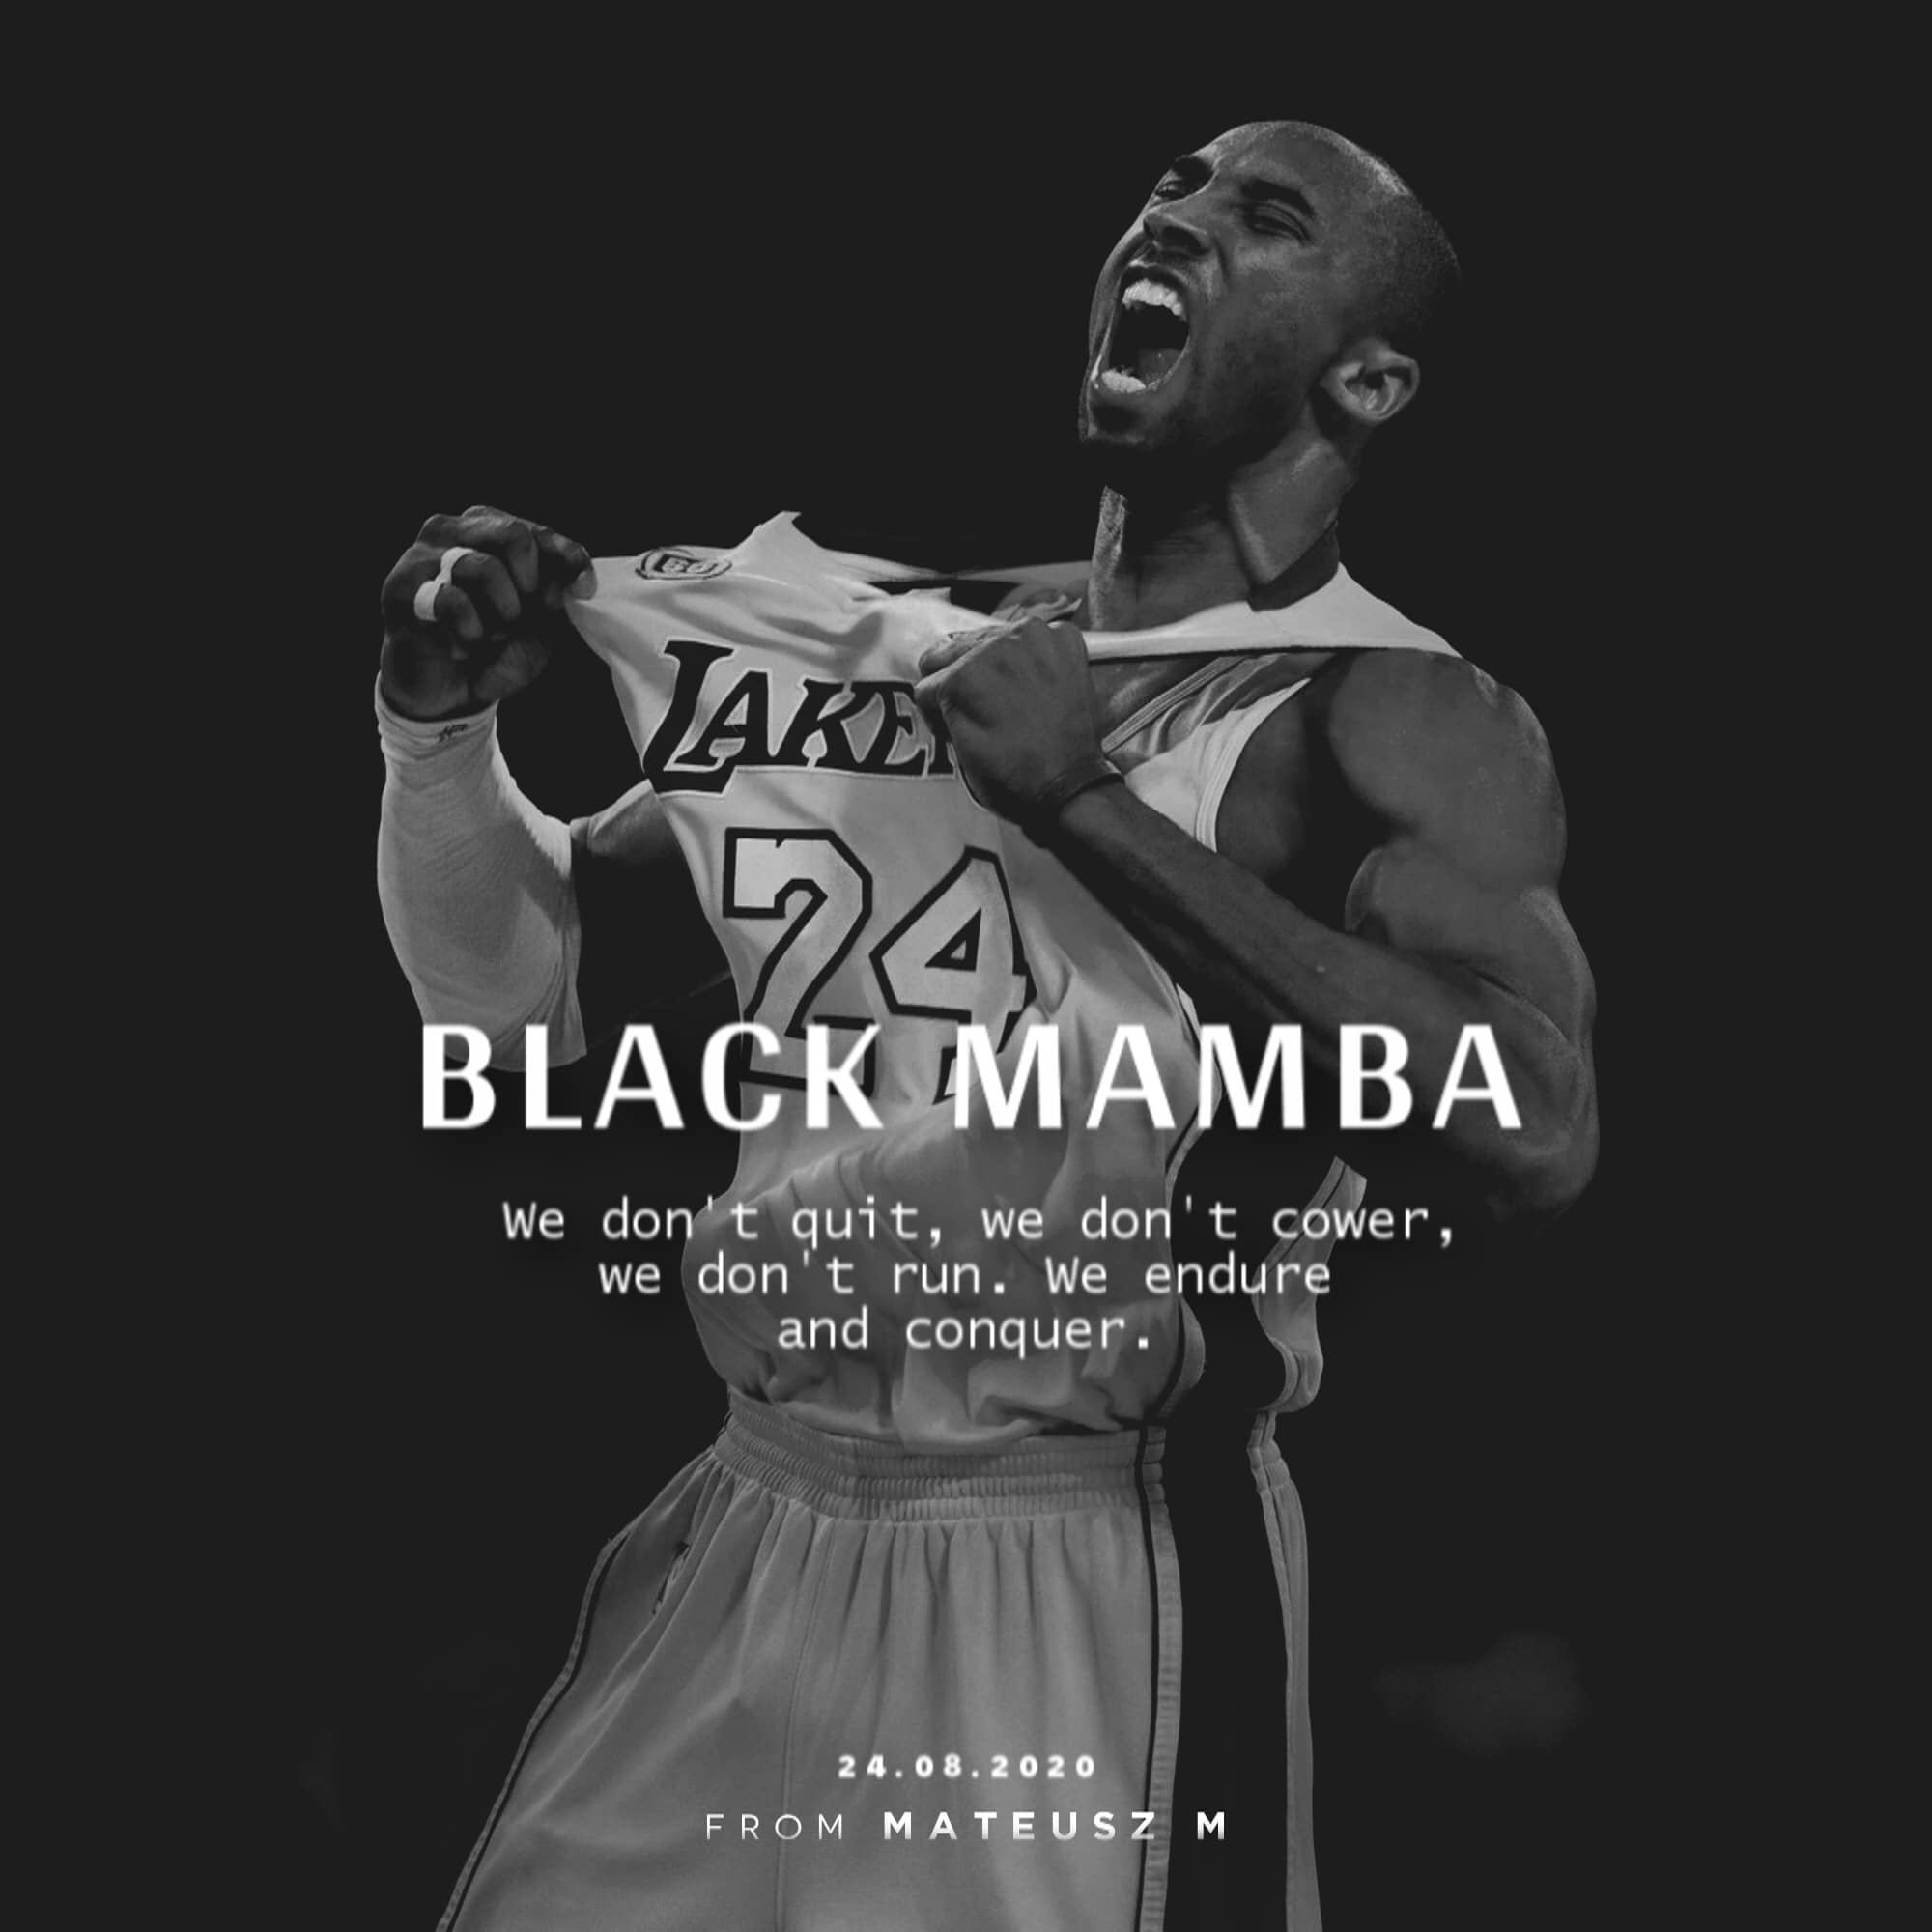 Inspirational words from the late Kobe Bryant [Image]